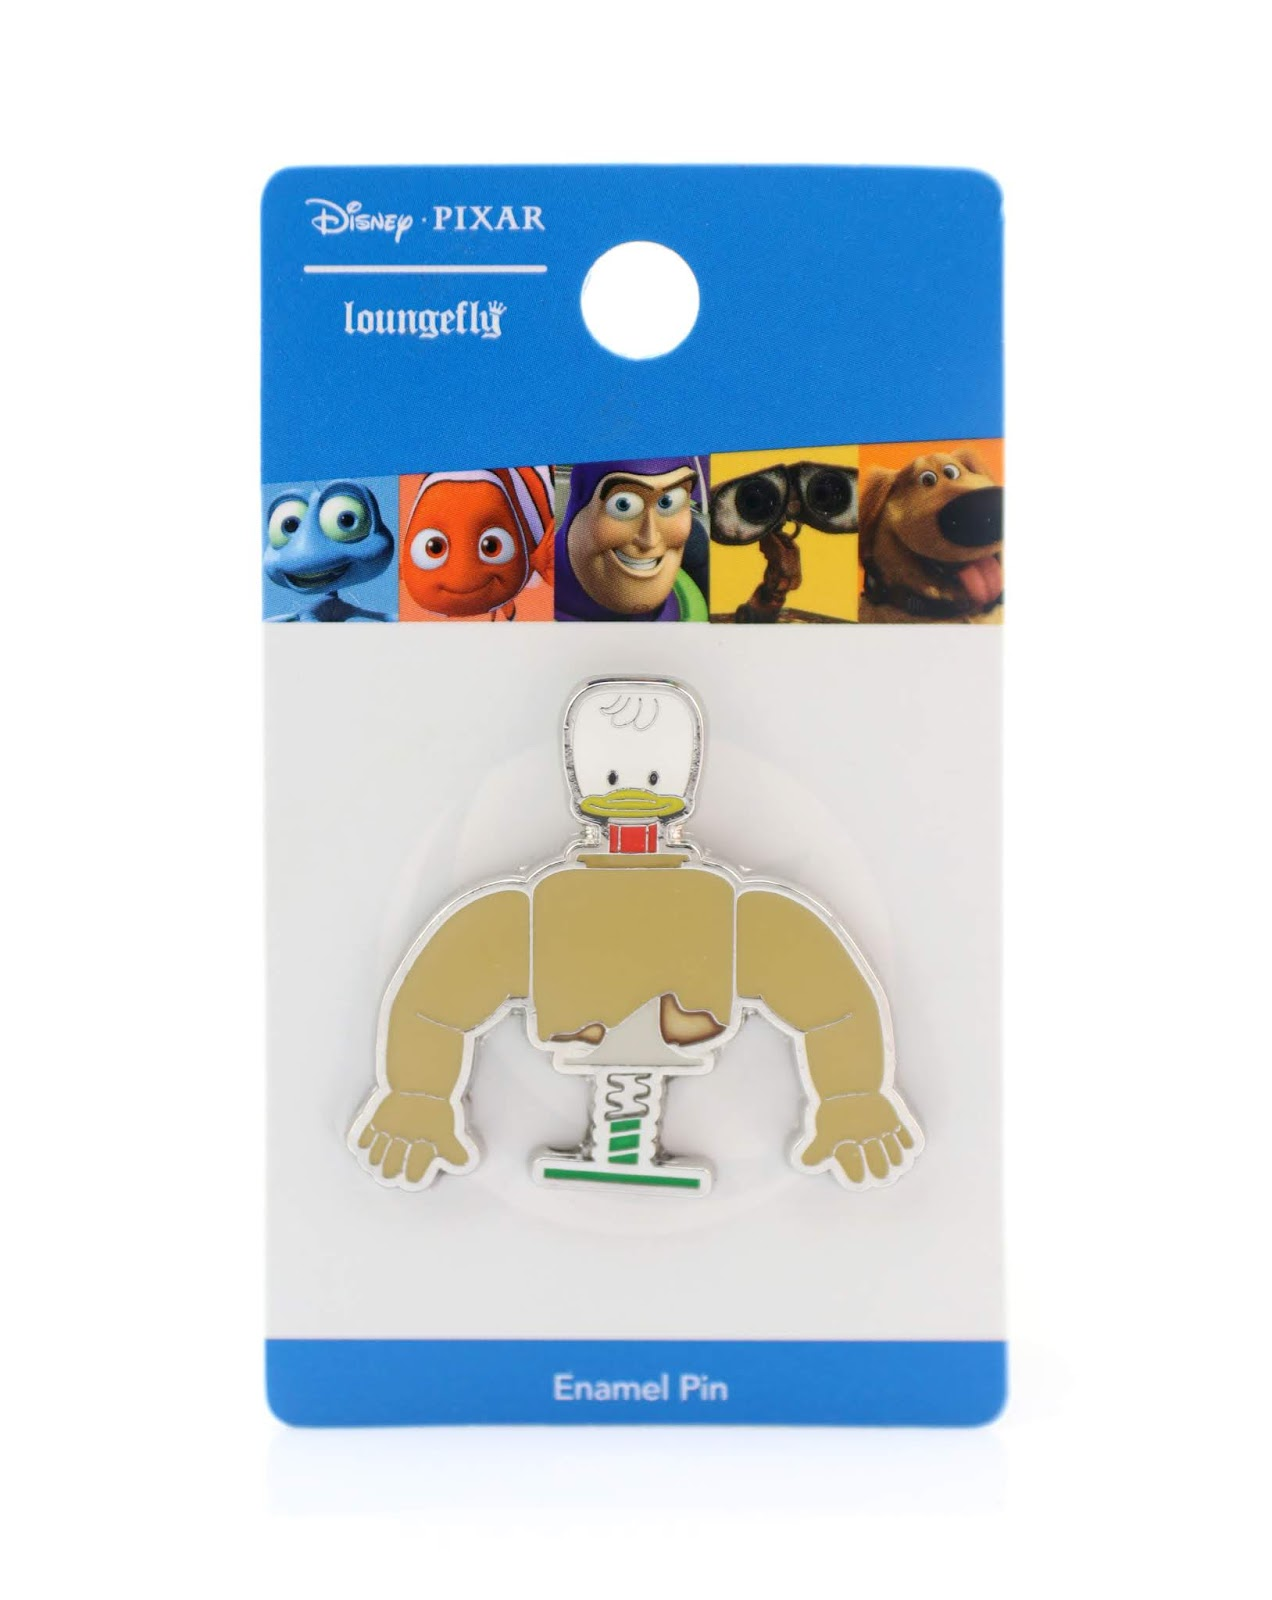 boxlunch loungefly toy story mutant toy pins ducky